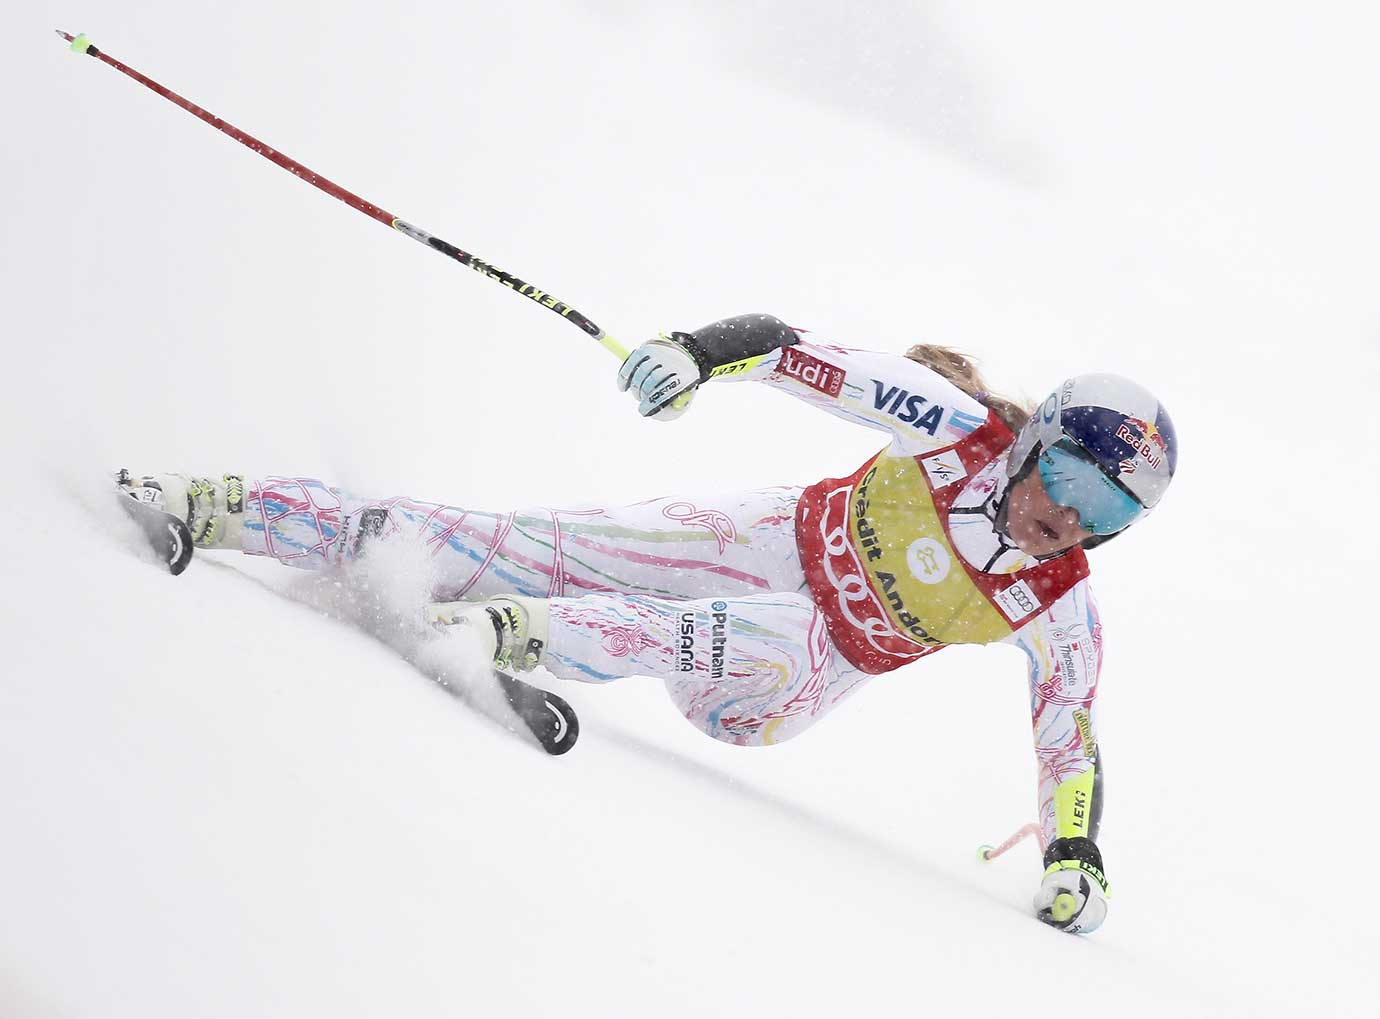 Lindsey Vonn competes during the World Cup Women's Super-G in Soldeu, Andorra.